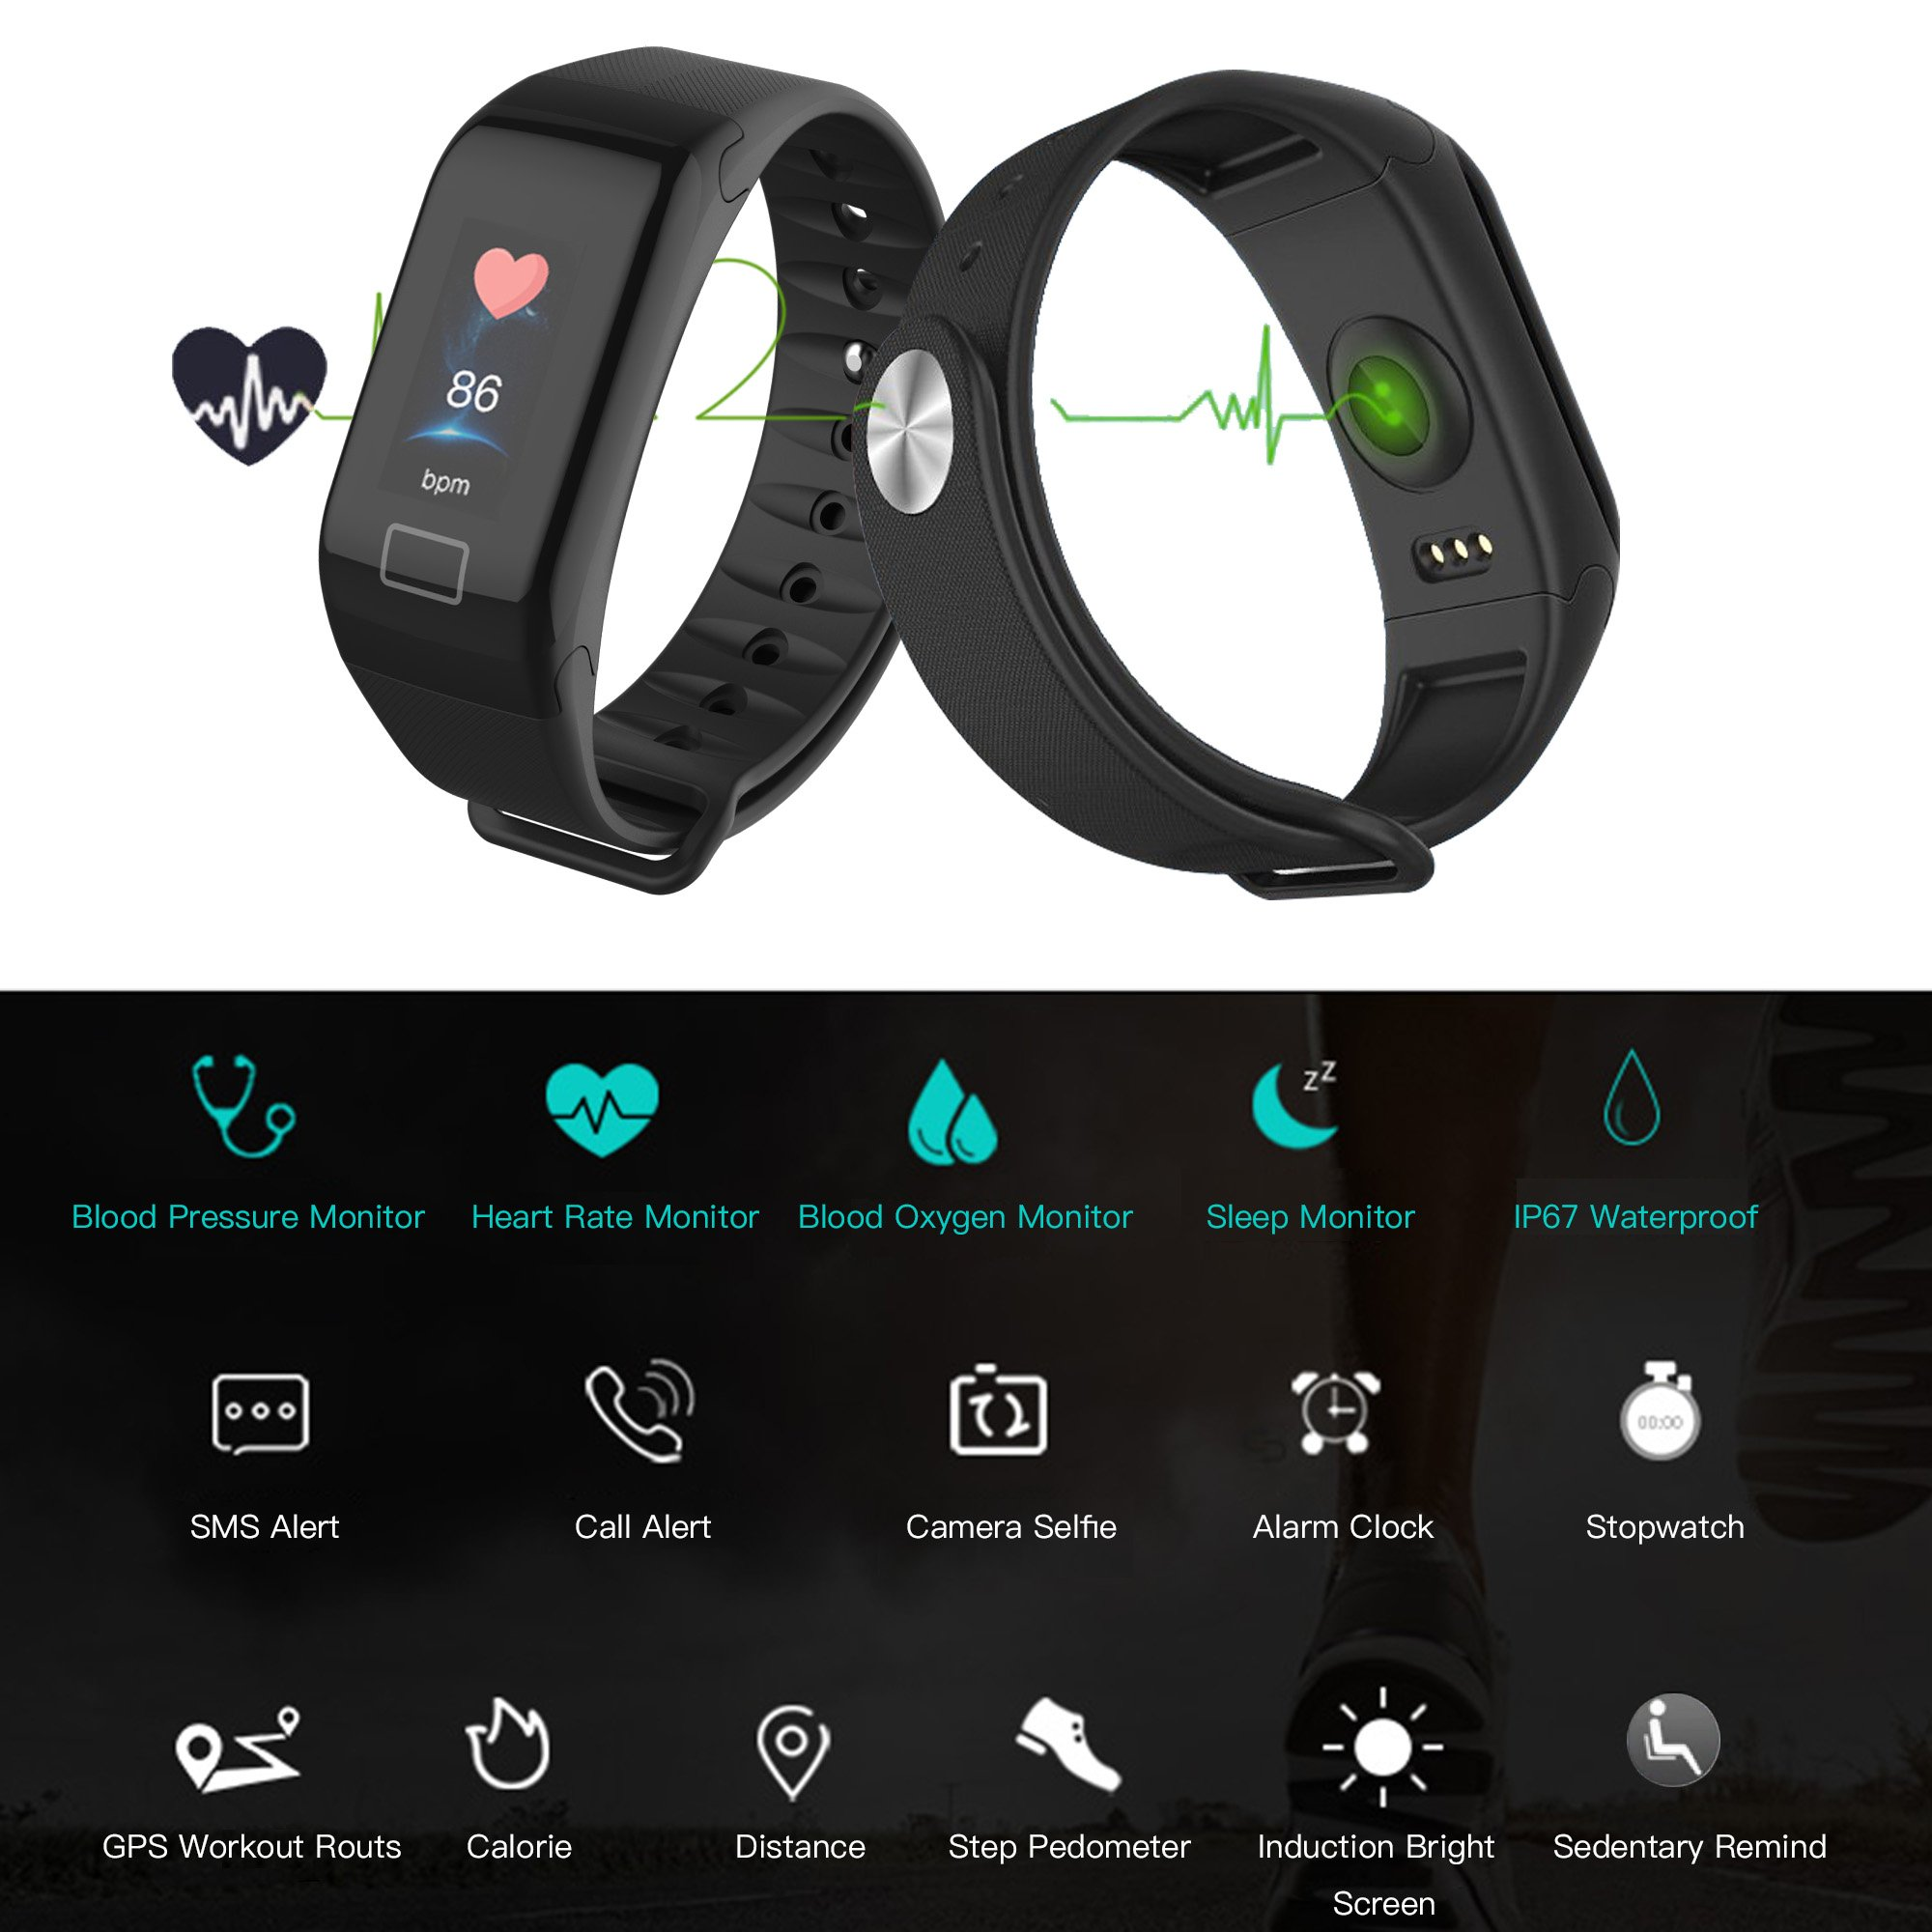 Cocofit Fitness Tracker Watch,Smart Band,Heart Rate Monitor Activity Tracker,IP67 Waterproof Smart Wristband,Pedometer Watch with Blood Pressure Monitor Sleep Monitor,Step Calorie Distance Counter